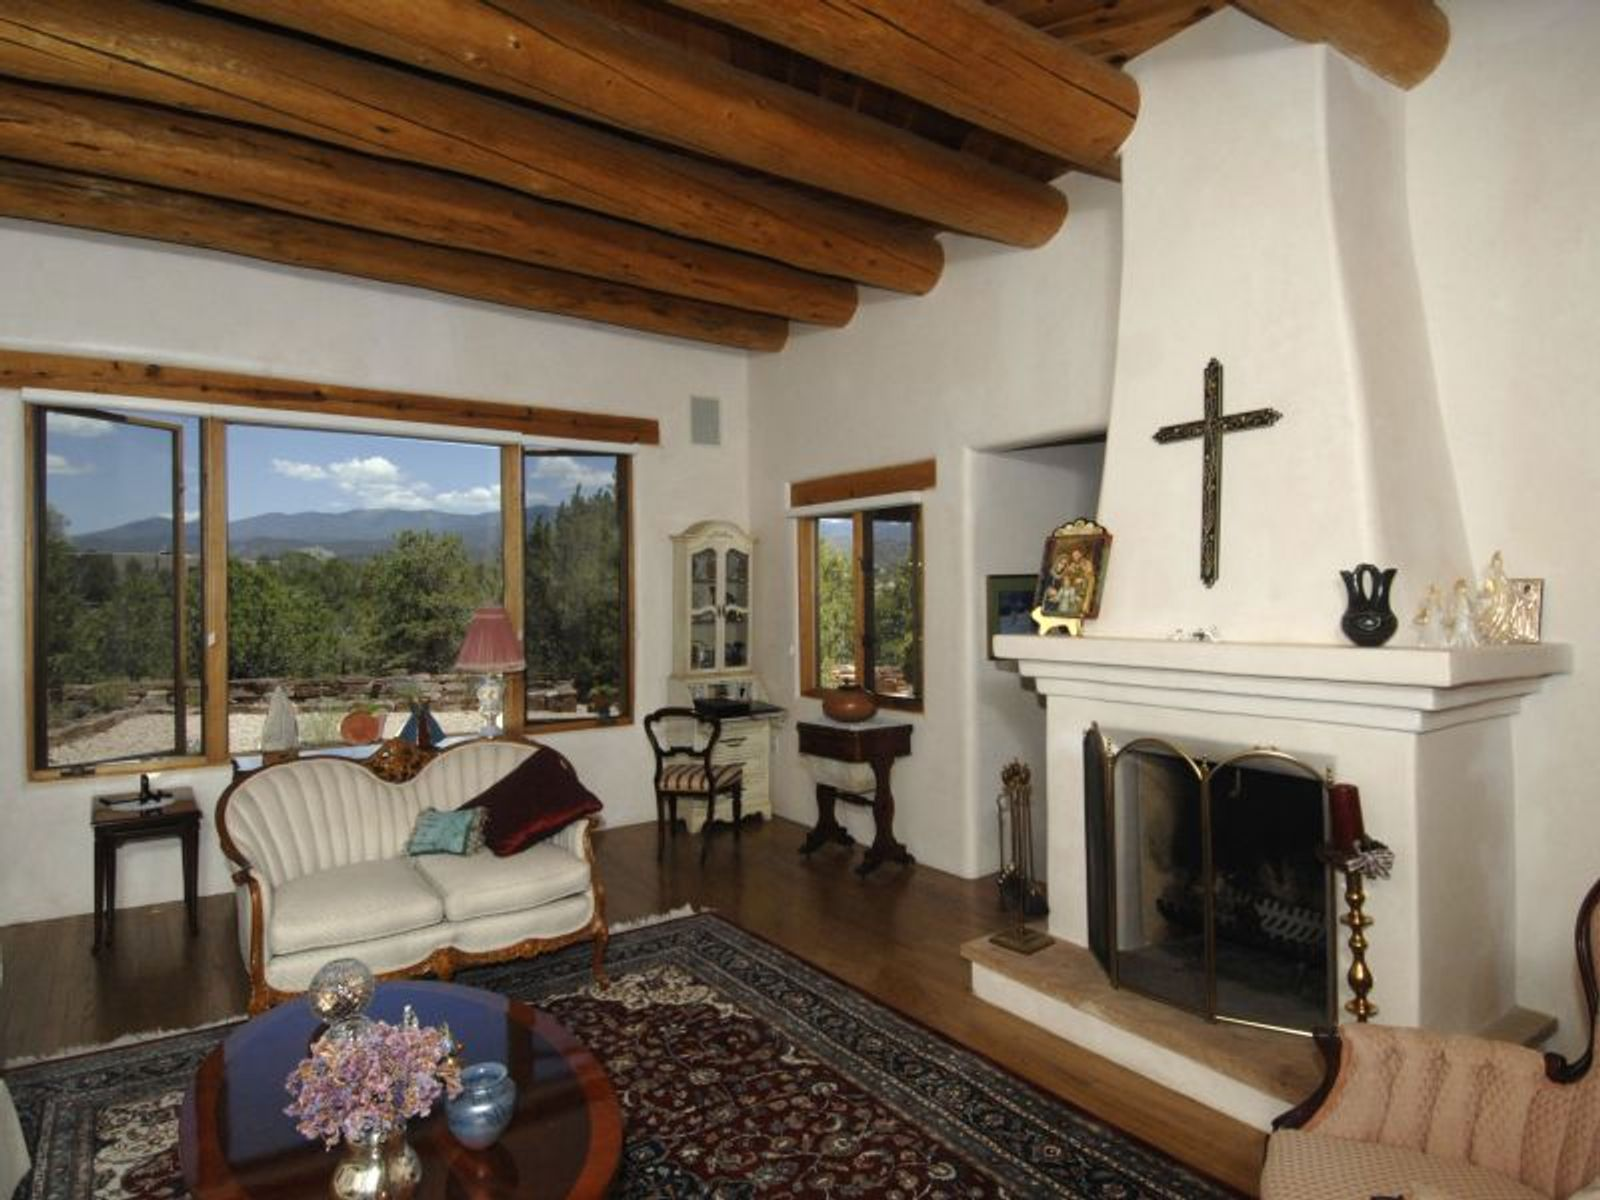 950  Old Taos Hwy, Santa Fe NM Single Family Home - Santa Fe Real Estate